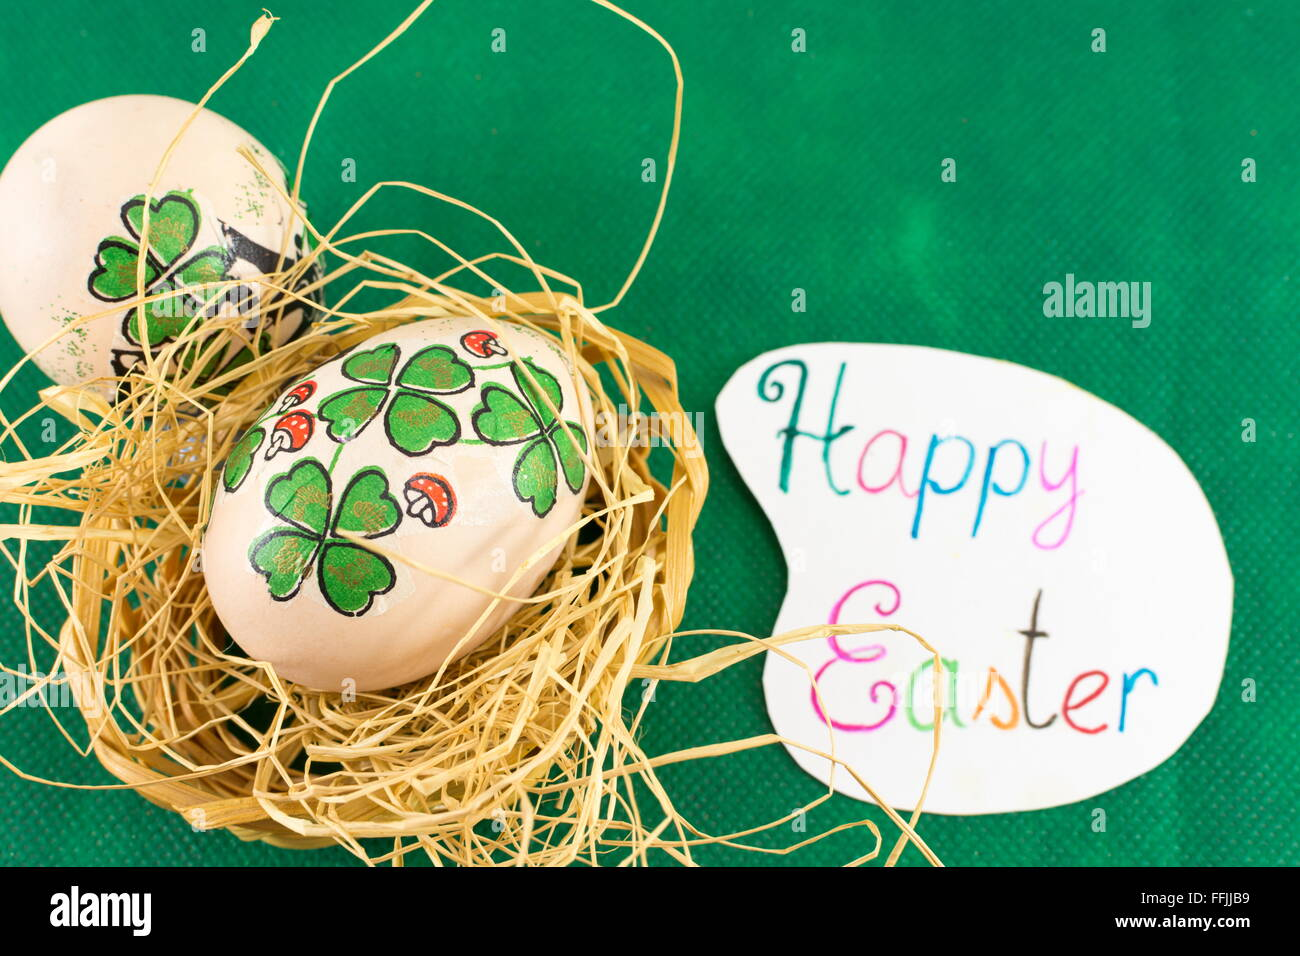 Irish Easter Egg High Resolution Stock Photography and Images - Alamy